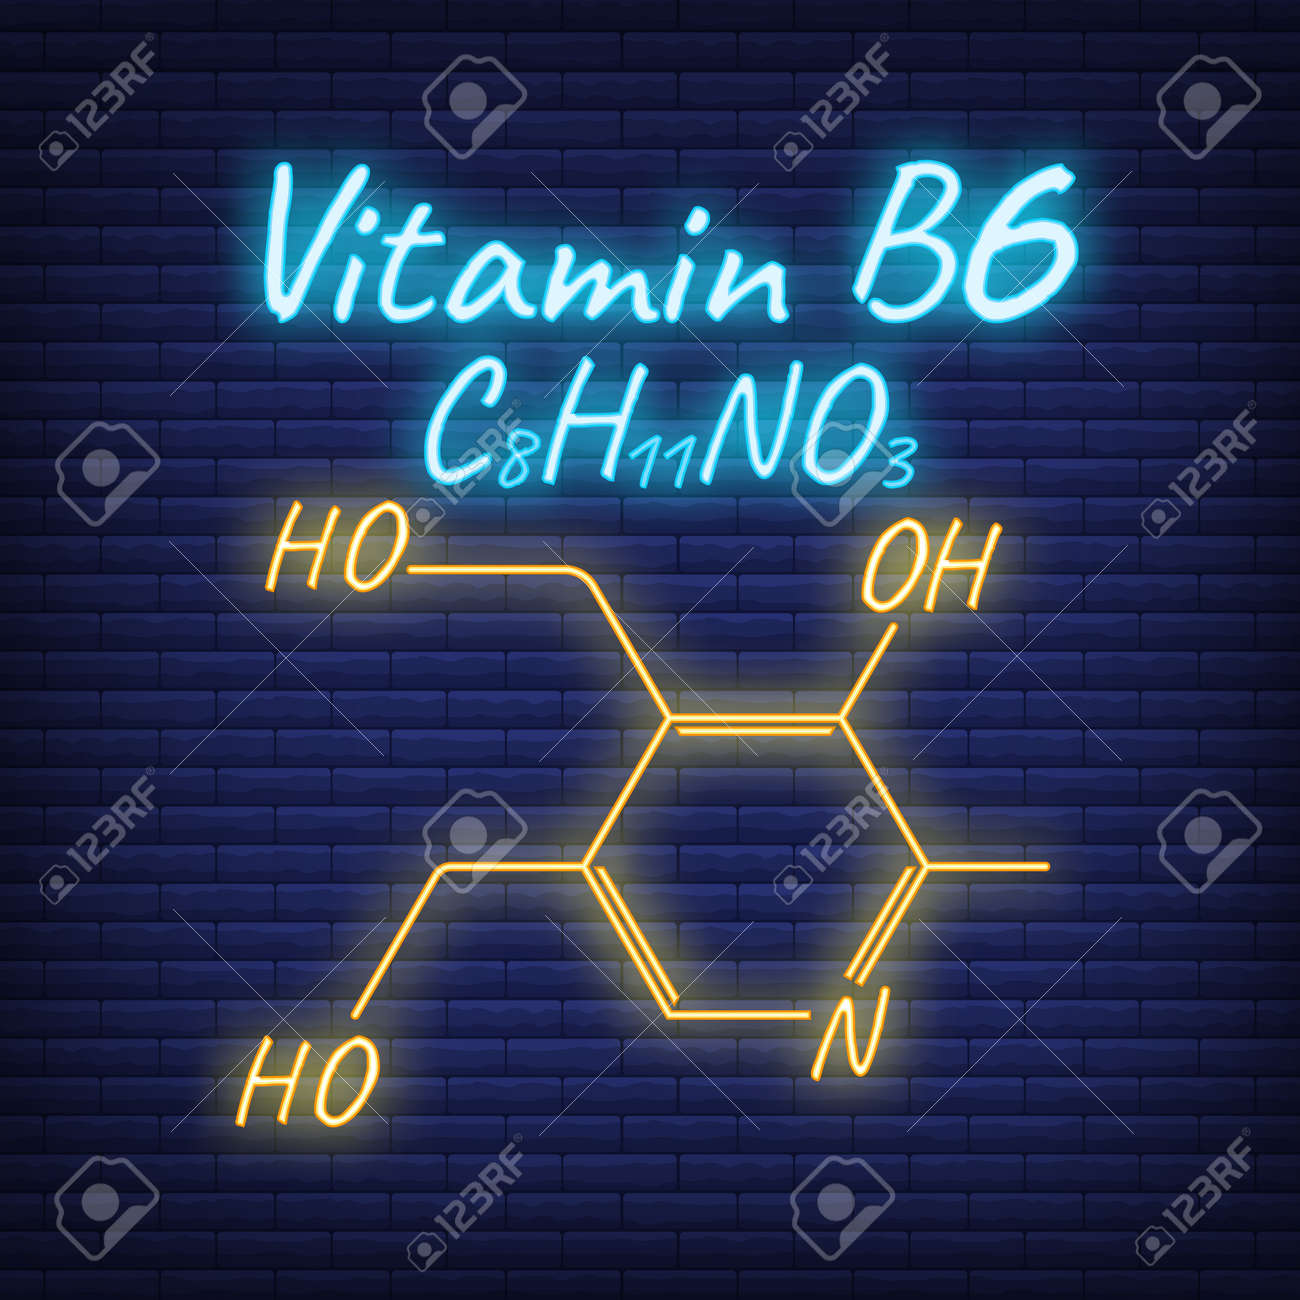 Vitamin B6 Label and Icon glow neon style. Vector Illustration isolated on wall background. Chemical Formula and Structure. - 166412731